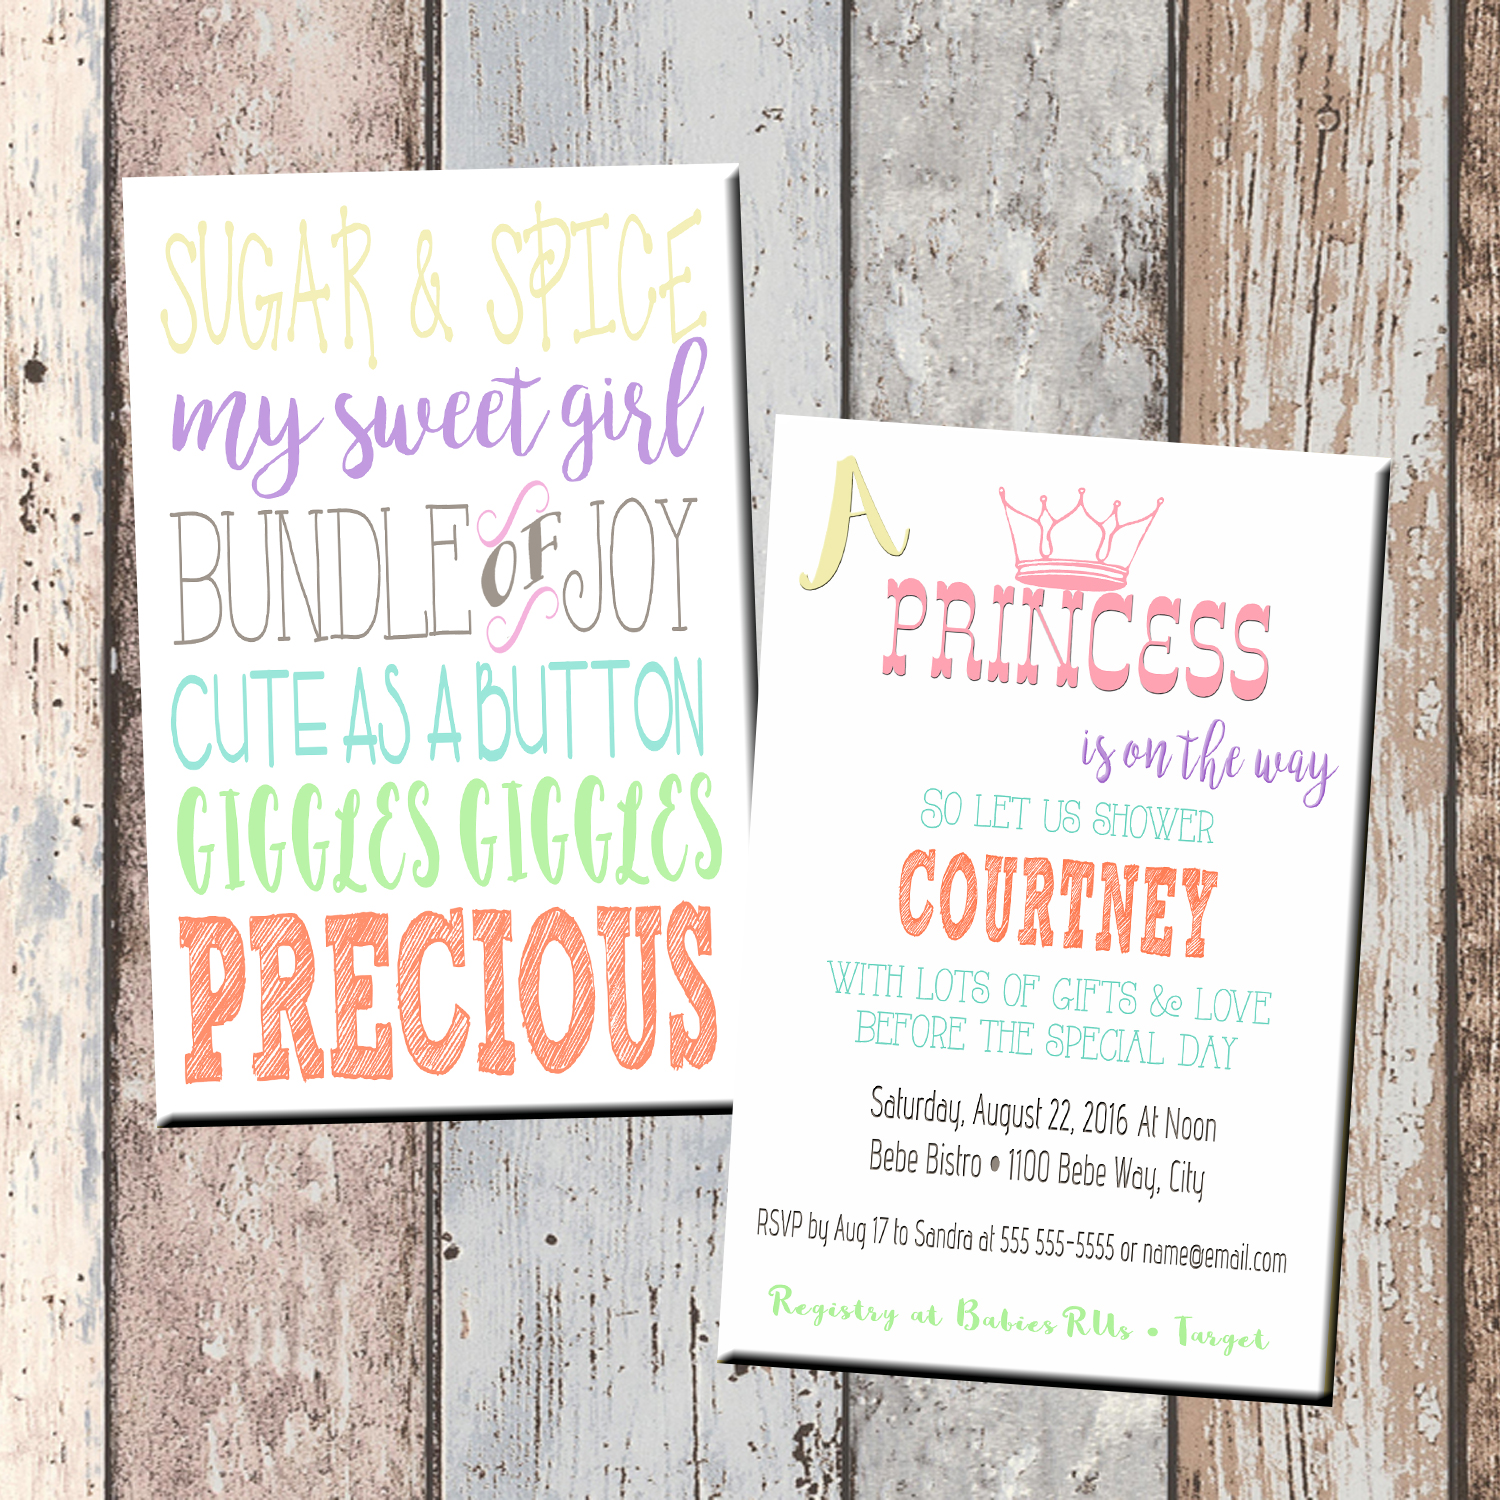 Princess Sugar & Spice Baby Shower Invitation-2 Sided · SCG Designs ·